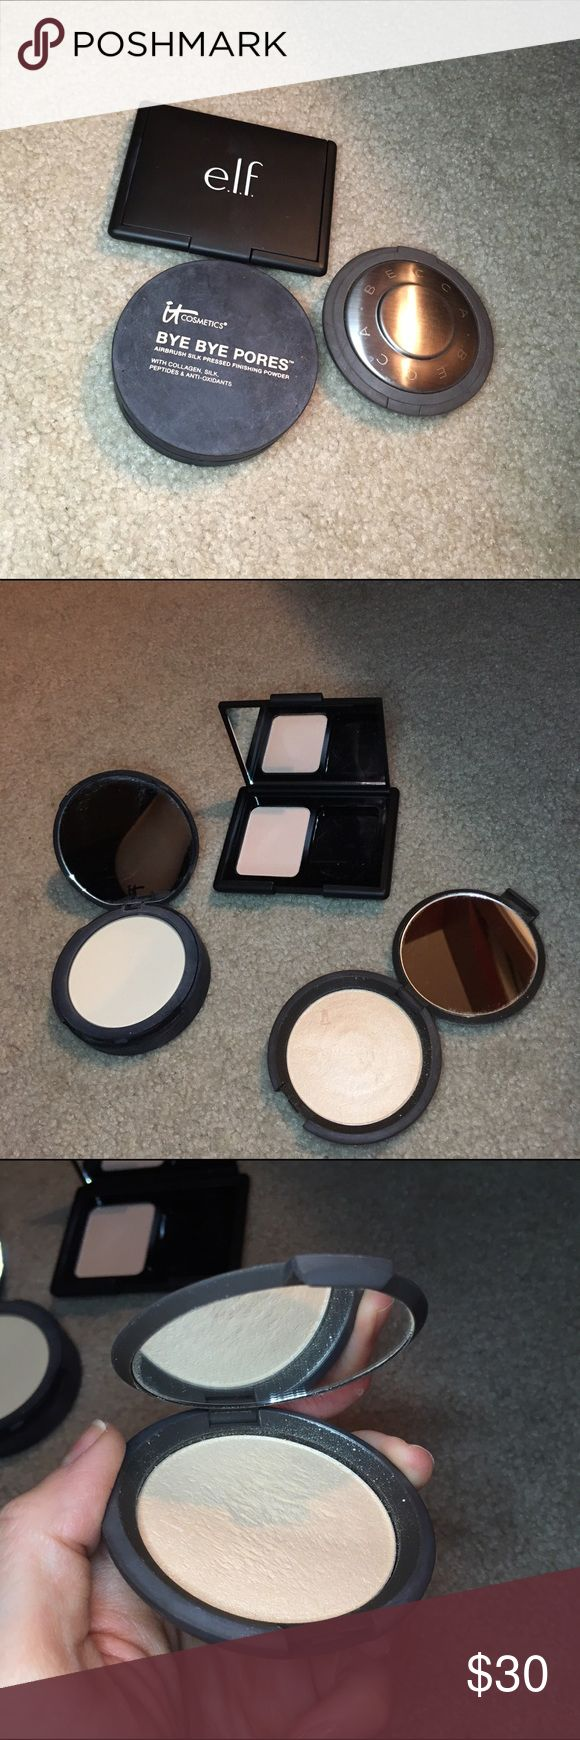 Set of 3 pressed powders - Becca, ITcosmetics, elf Set of 3 pressed powders - Becca, ITcosmetics, elf 1️⃣elf translucent pressed powder. Used once. Sponge not included. $3 retail2️⃣Becca highlighter in moonstone (highly recommended by NikkieTutorials). Used but 25-50% fill left. Have not hit pan yet. $38 retail3️⃣itCosmetics Bye Bye Pores pressed powder. Used but 50-75% fill left. No sponge included. $29 retail. I am downsizing my makeup & don't use these much anymore. All will be sanitized…